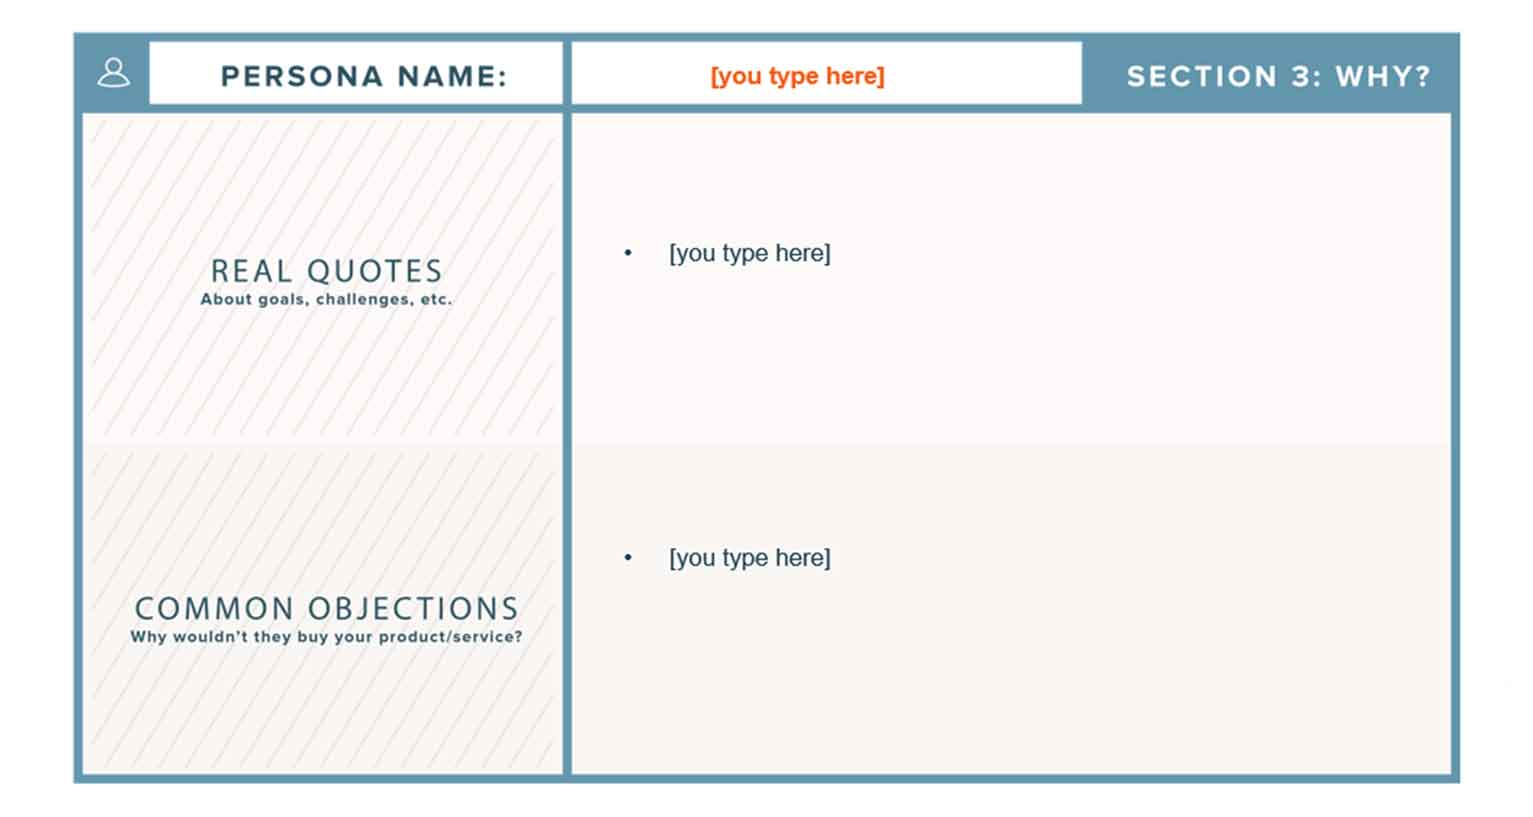 Section 3 of a free template from HubSpot.